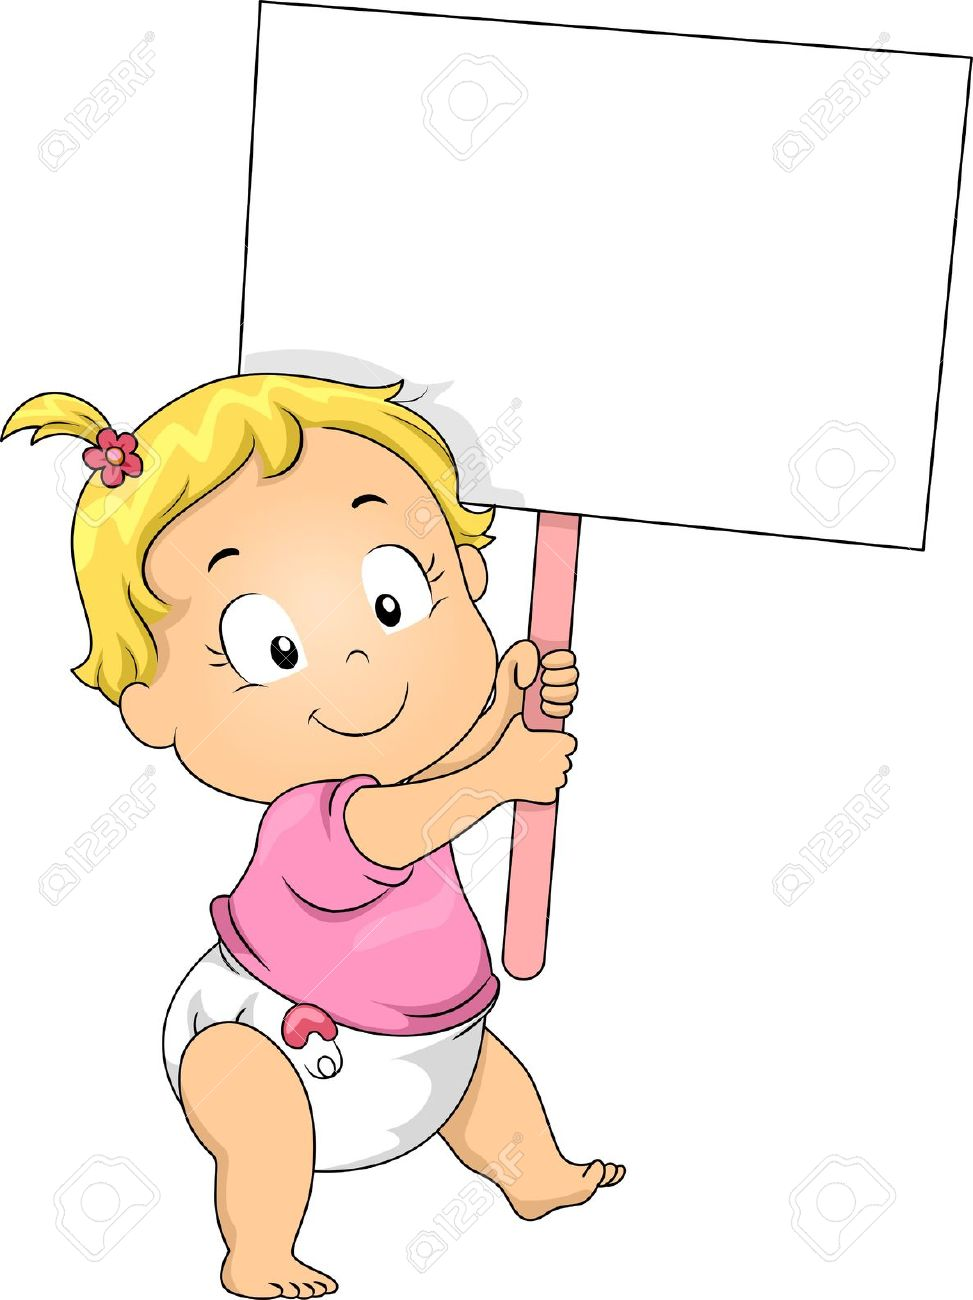 Illustration Of A Toddler Girl Holding A Blank Board Stock Photo.